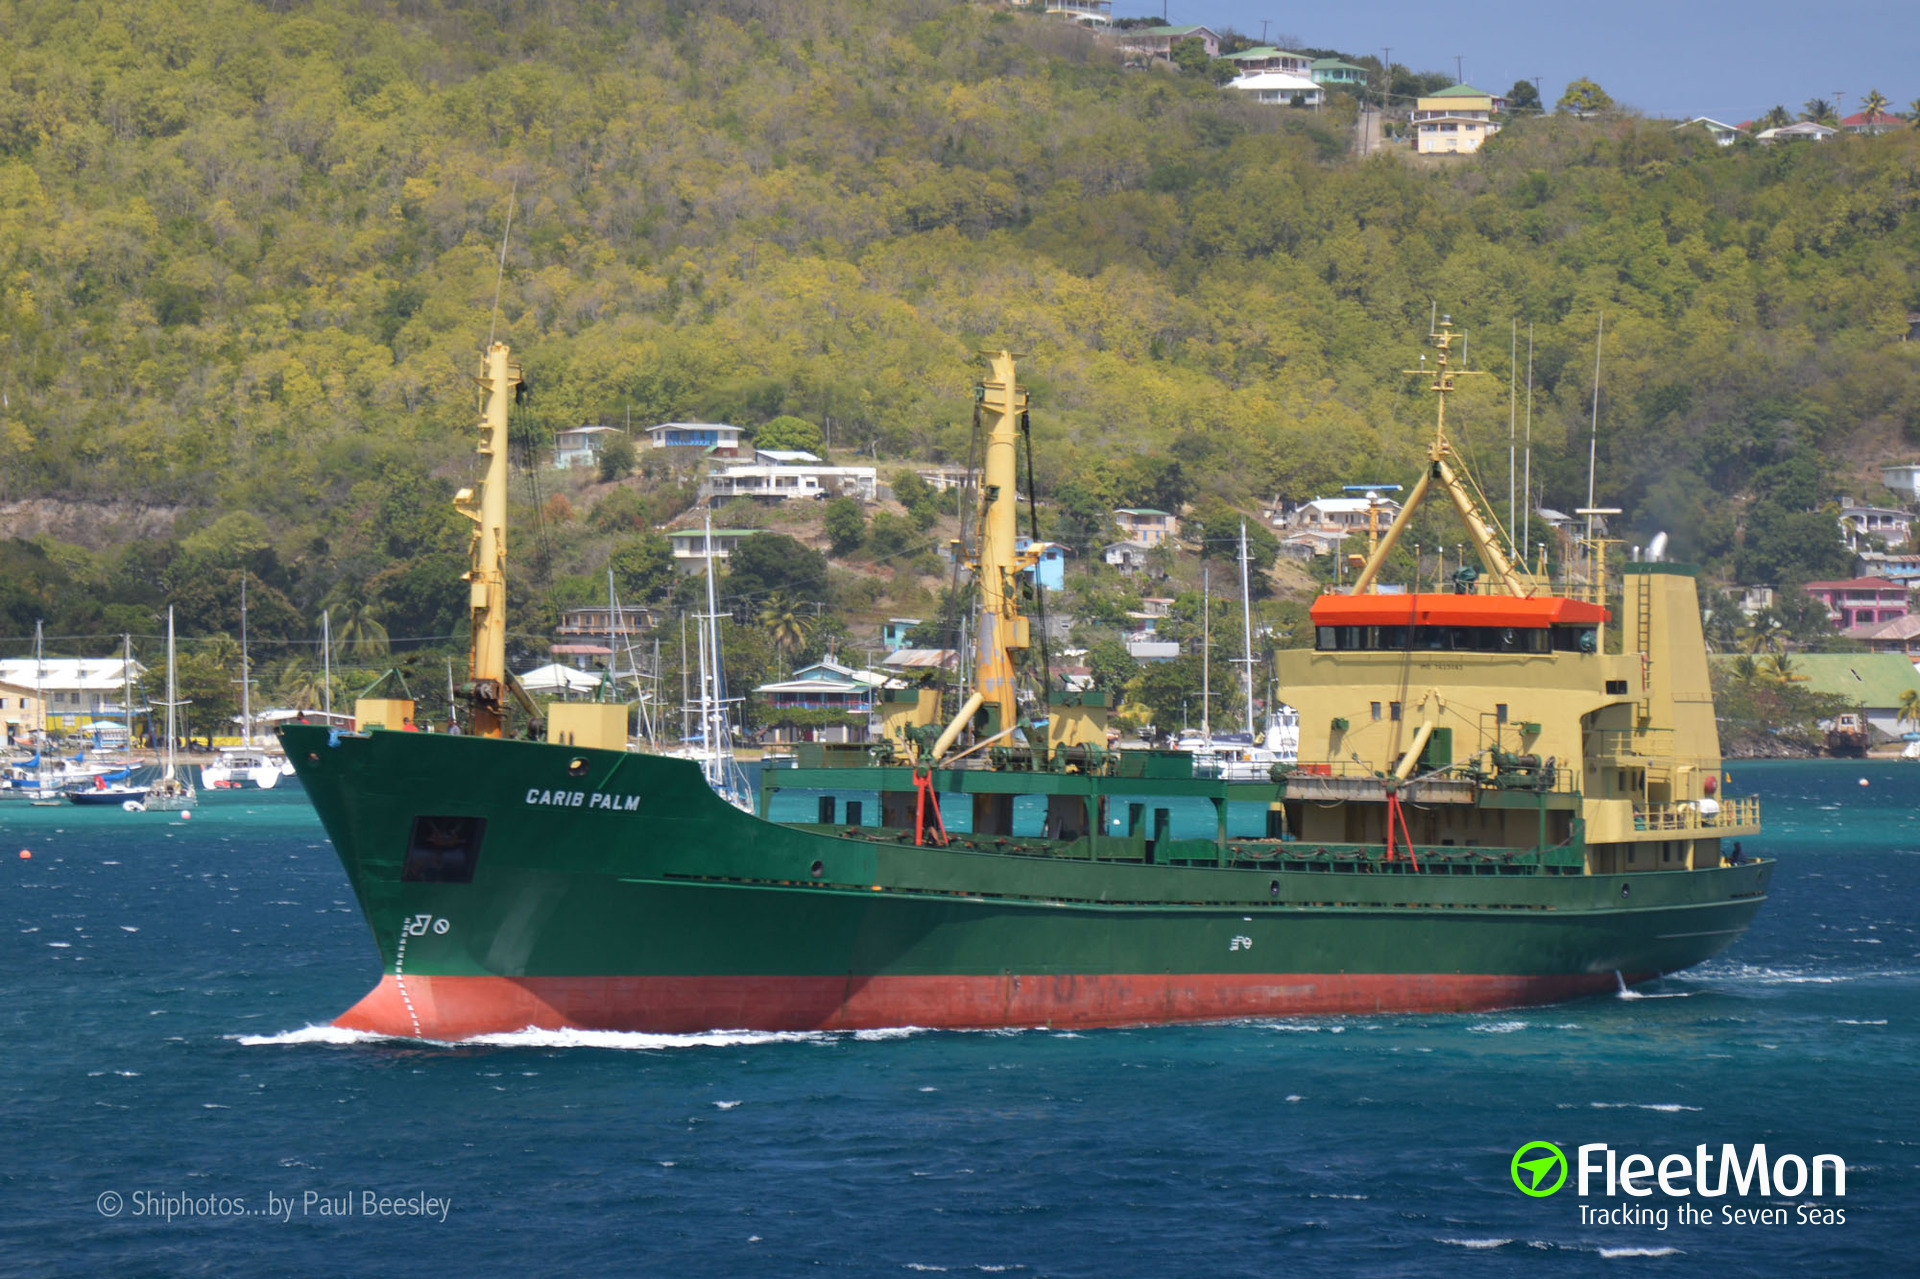 General cargo vessel CARIB PALM arrested with 2.4 tons of cocaine on board